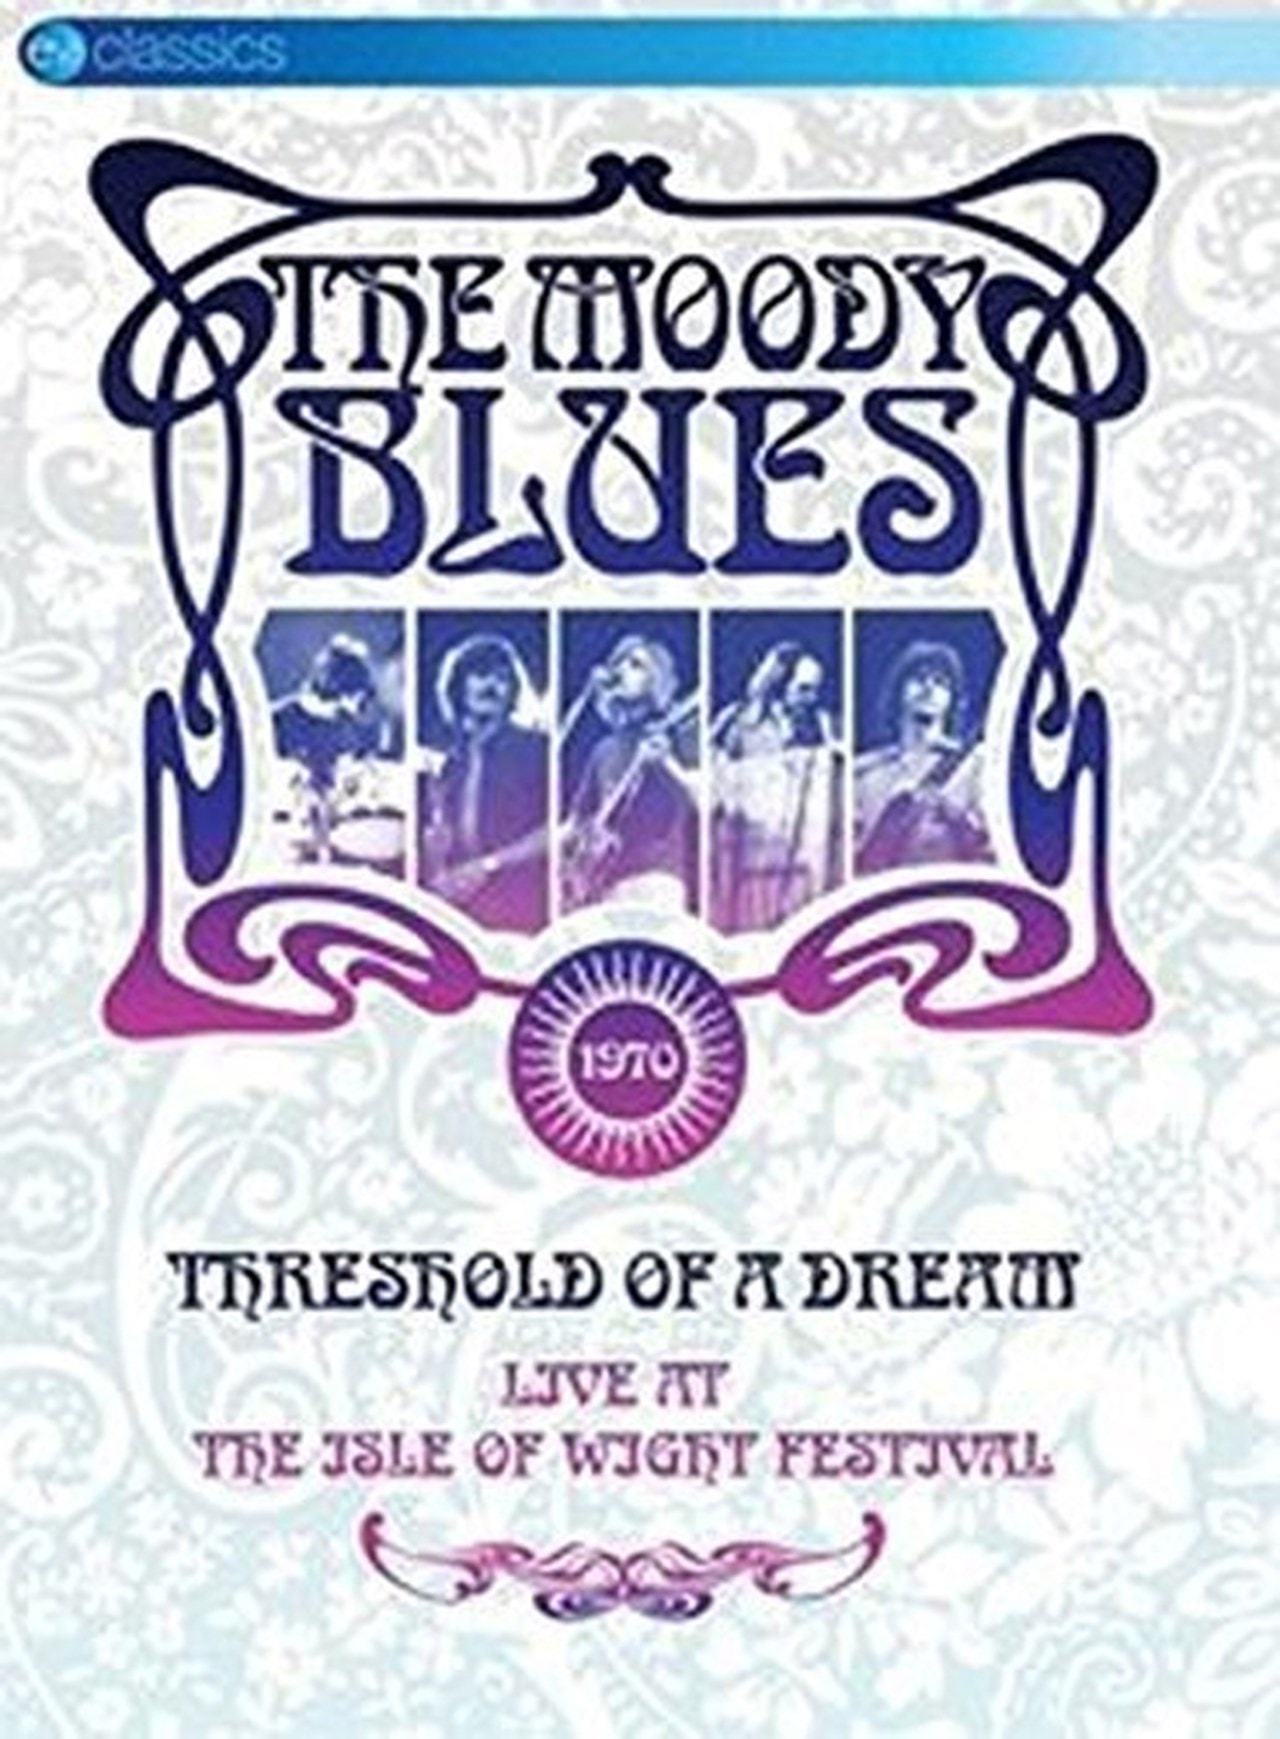 The Moody Blues: Threshold of a Dream - Live at the Isle of Wight - 1